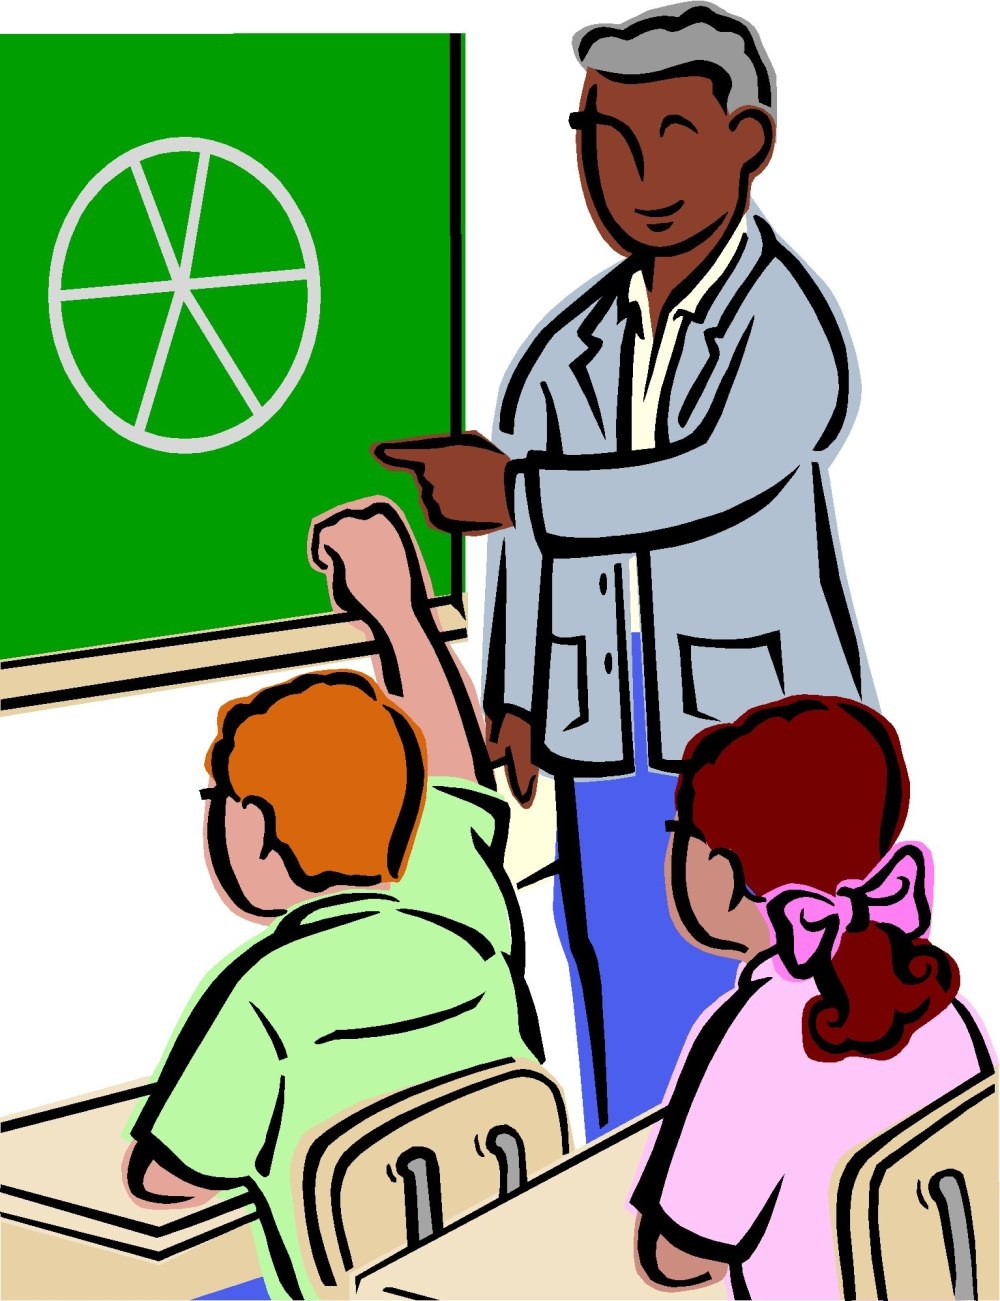 medium resolution of images for teachers meeting clipart